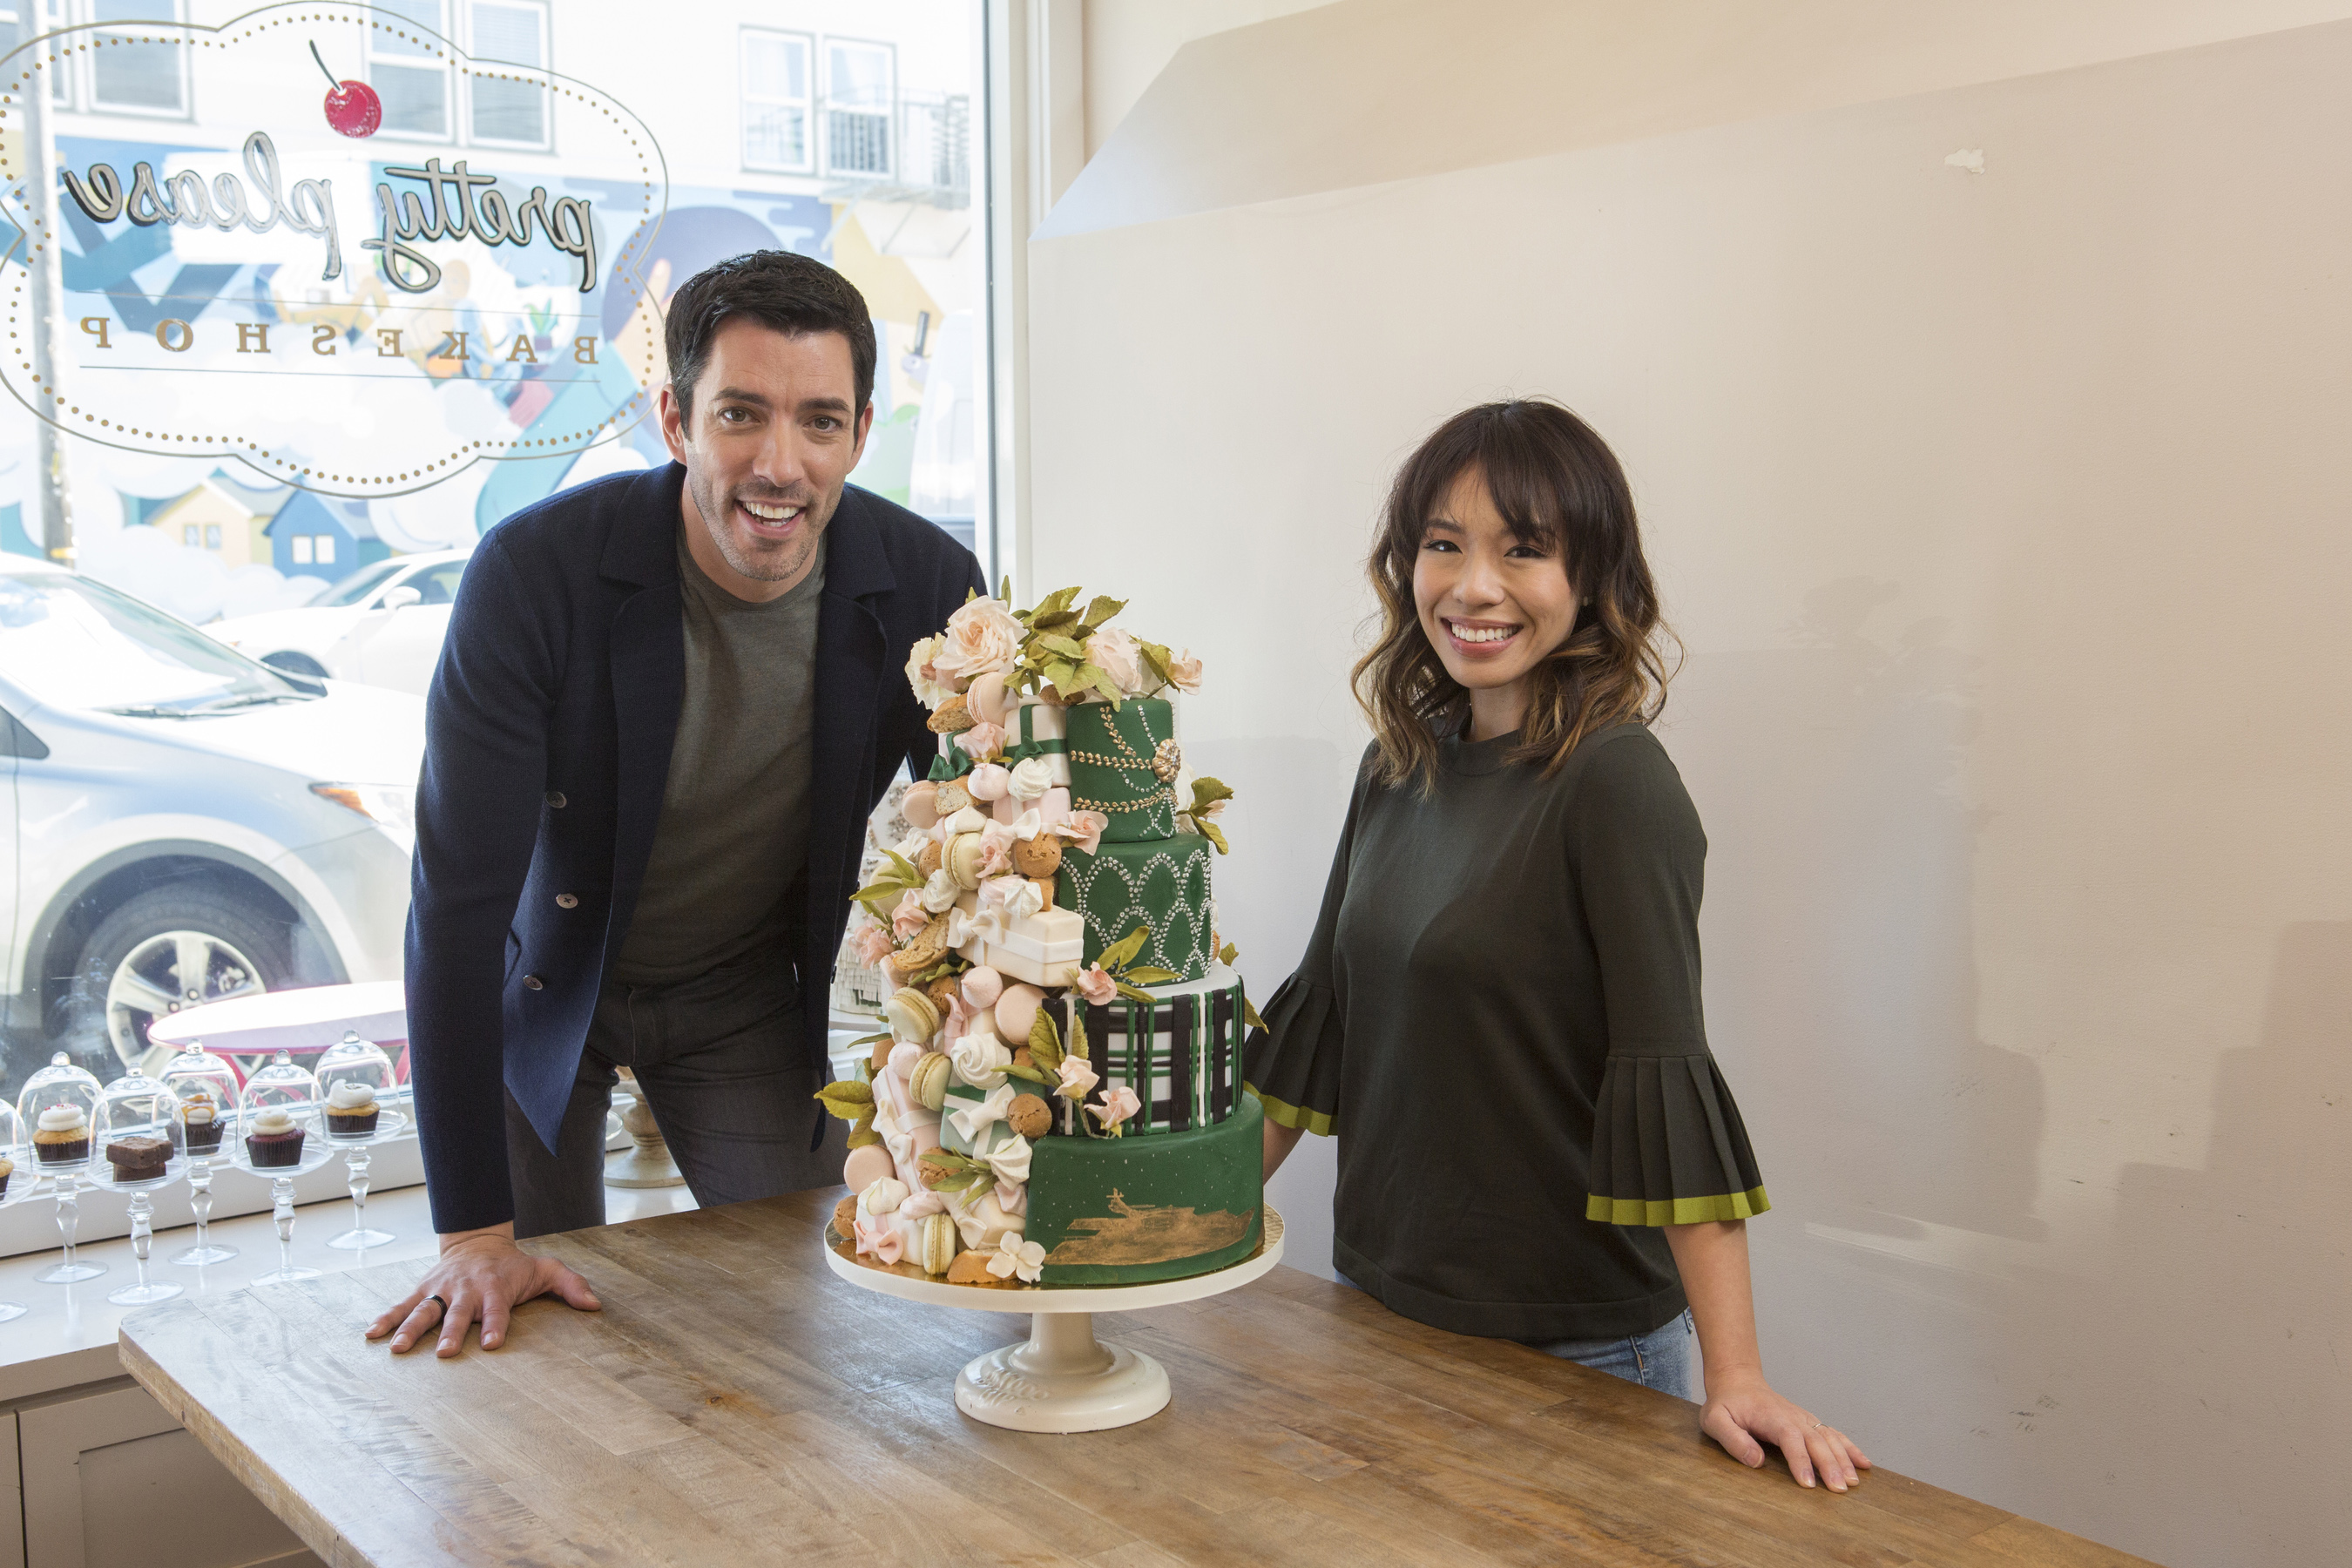 Drew Scott and Linda Phan on Food Network's Wedding Cake Countdown with Drew and Linda